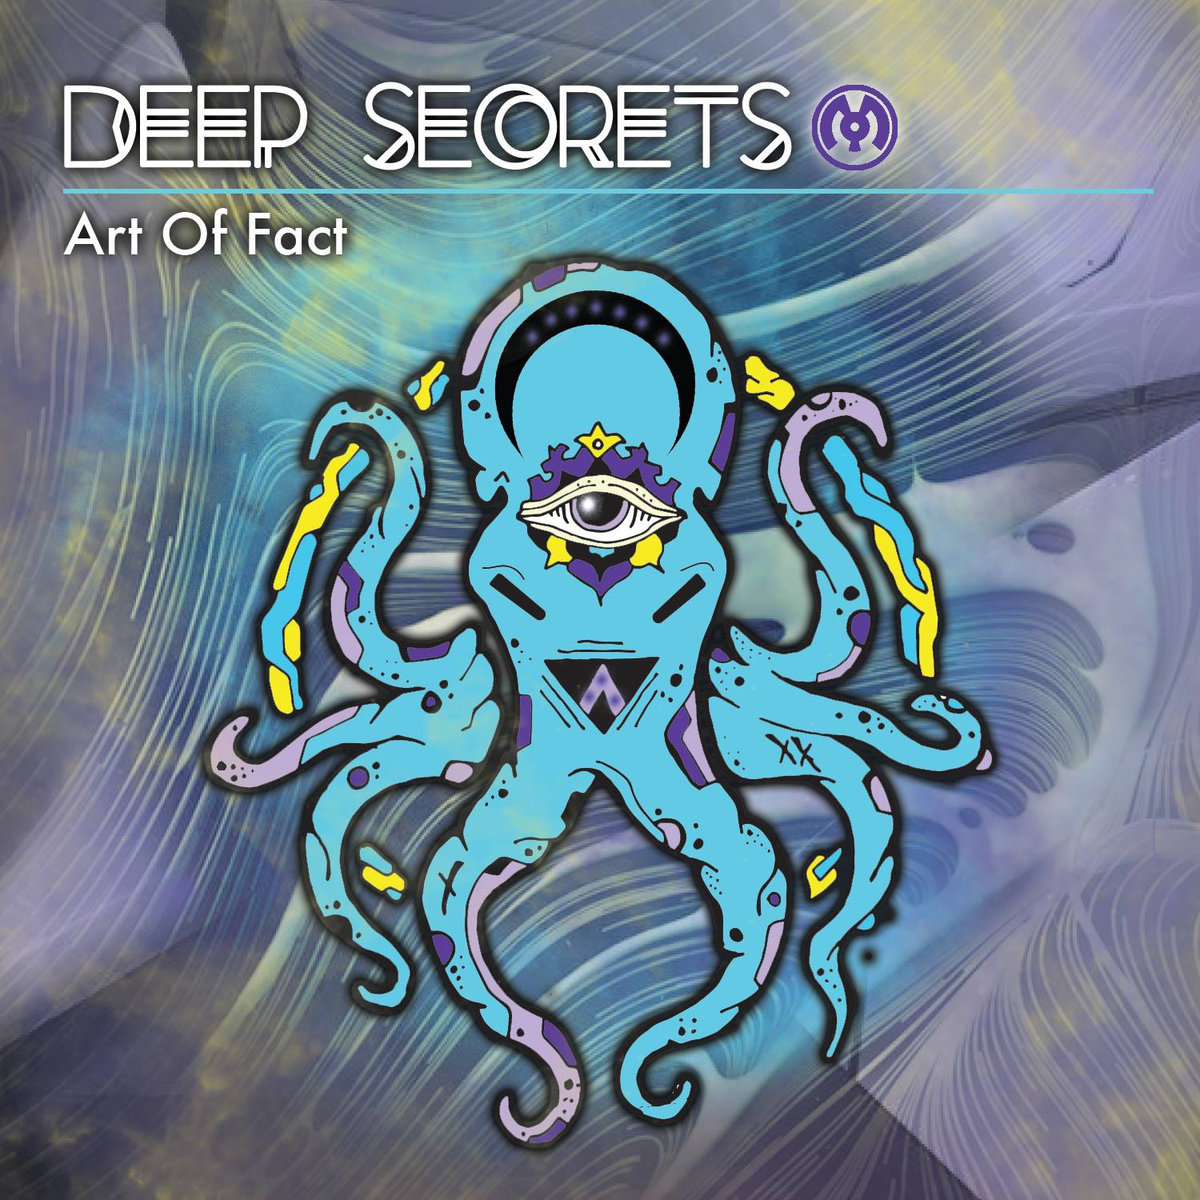 Art of Fact - Squid Fins (Spoken Bird Remix) @ 'Deep Secrets' album (electronic, dubstep)